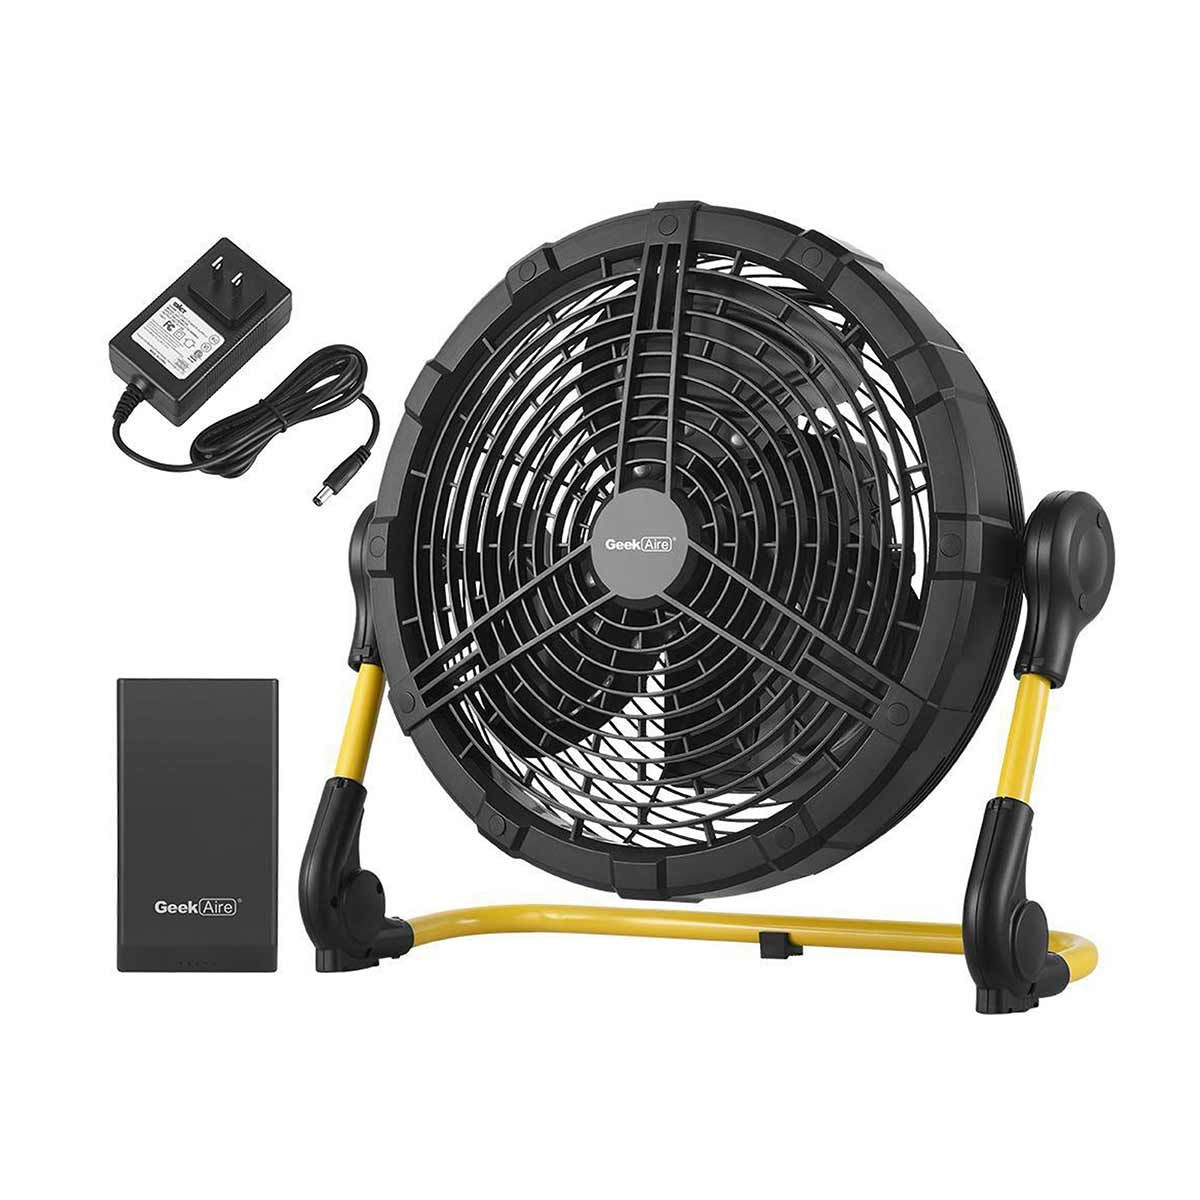 Geek Aire CF100, 12 Inch Rechargeable Outdoor Fan with 15000 mAh Li-ion Battery, upto 3 - 23hrs Run time